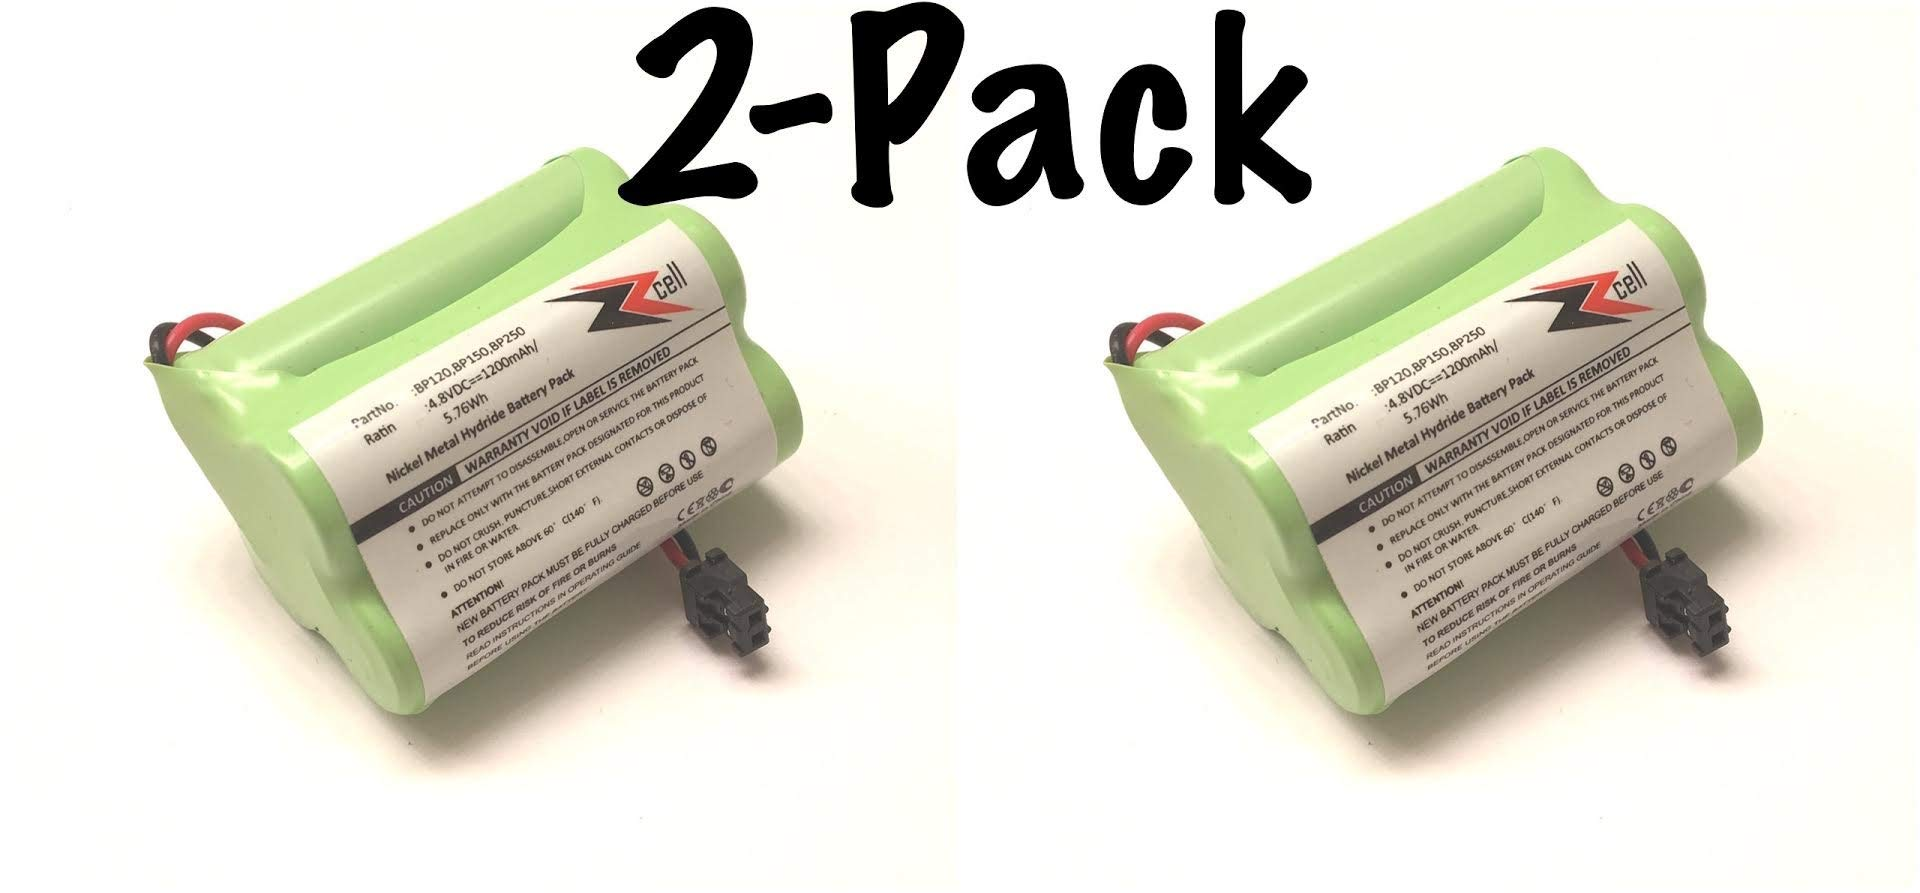 2-Pack ZZcell Battery For Bearcat Sportcat BP120 / BP150 / BP180 / BP250, Uniden BBTY0356001 1200 mAh by ZZcell